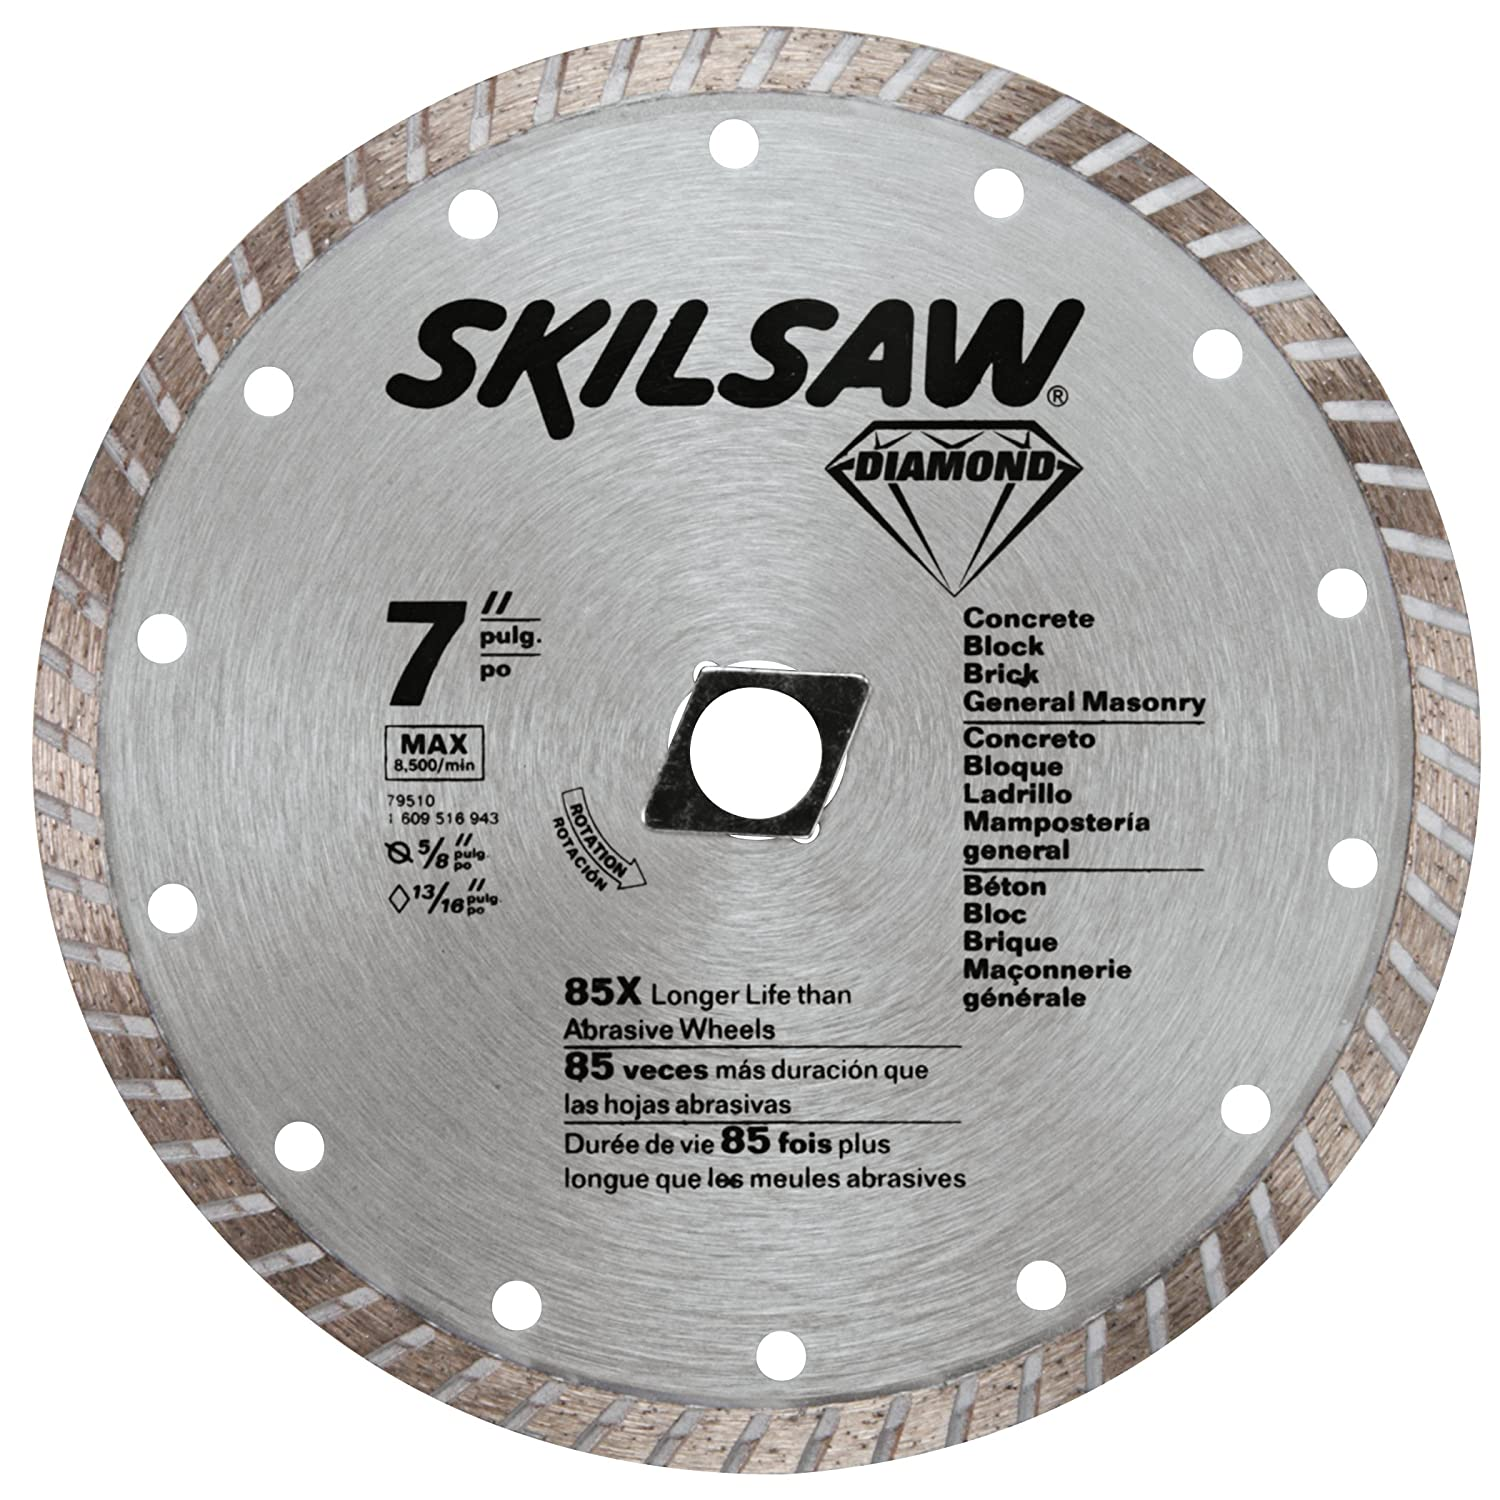 Skil 79510 7 inch turbo rim diamond saw blade with 58 inch or skil 79510 7 inch turbo rim diamond saw blade with 58 inch or diamond knockout arbor for masonry amazon greentooth Images